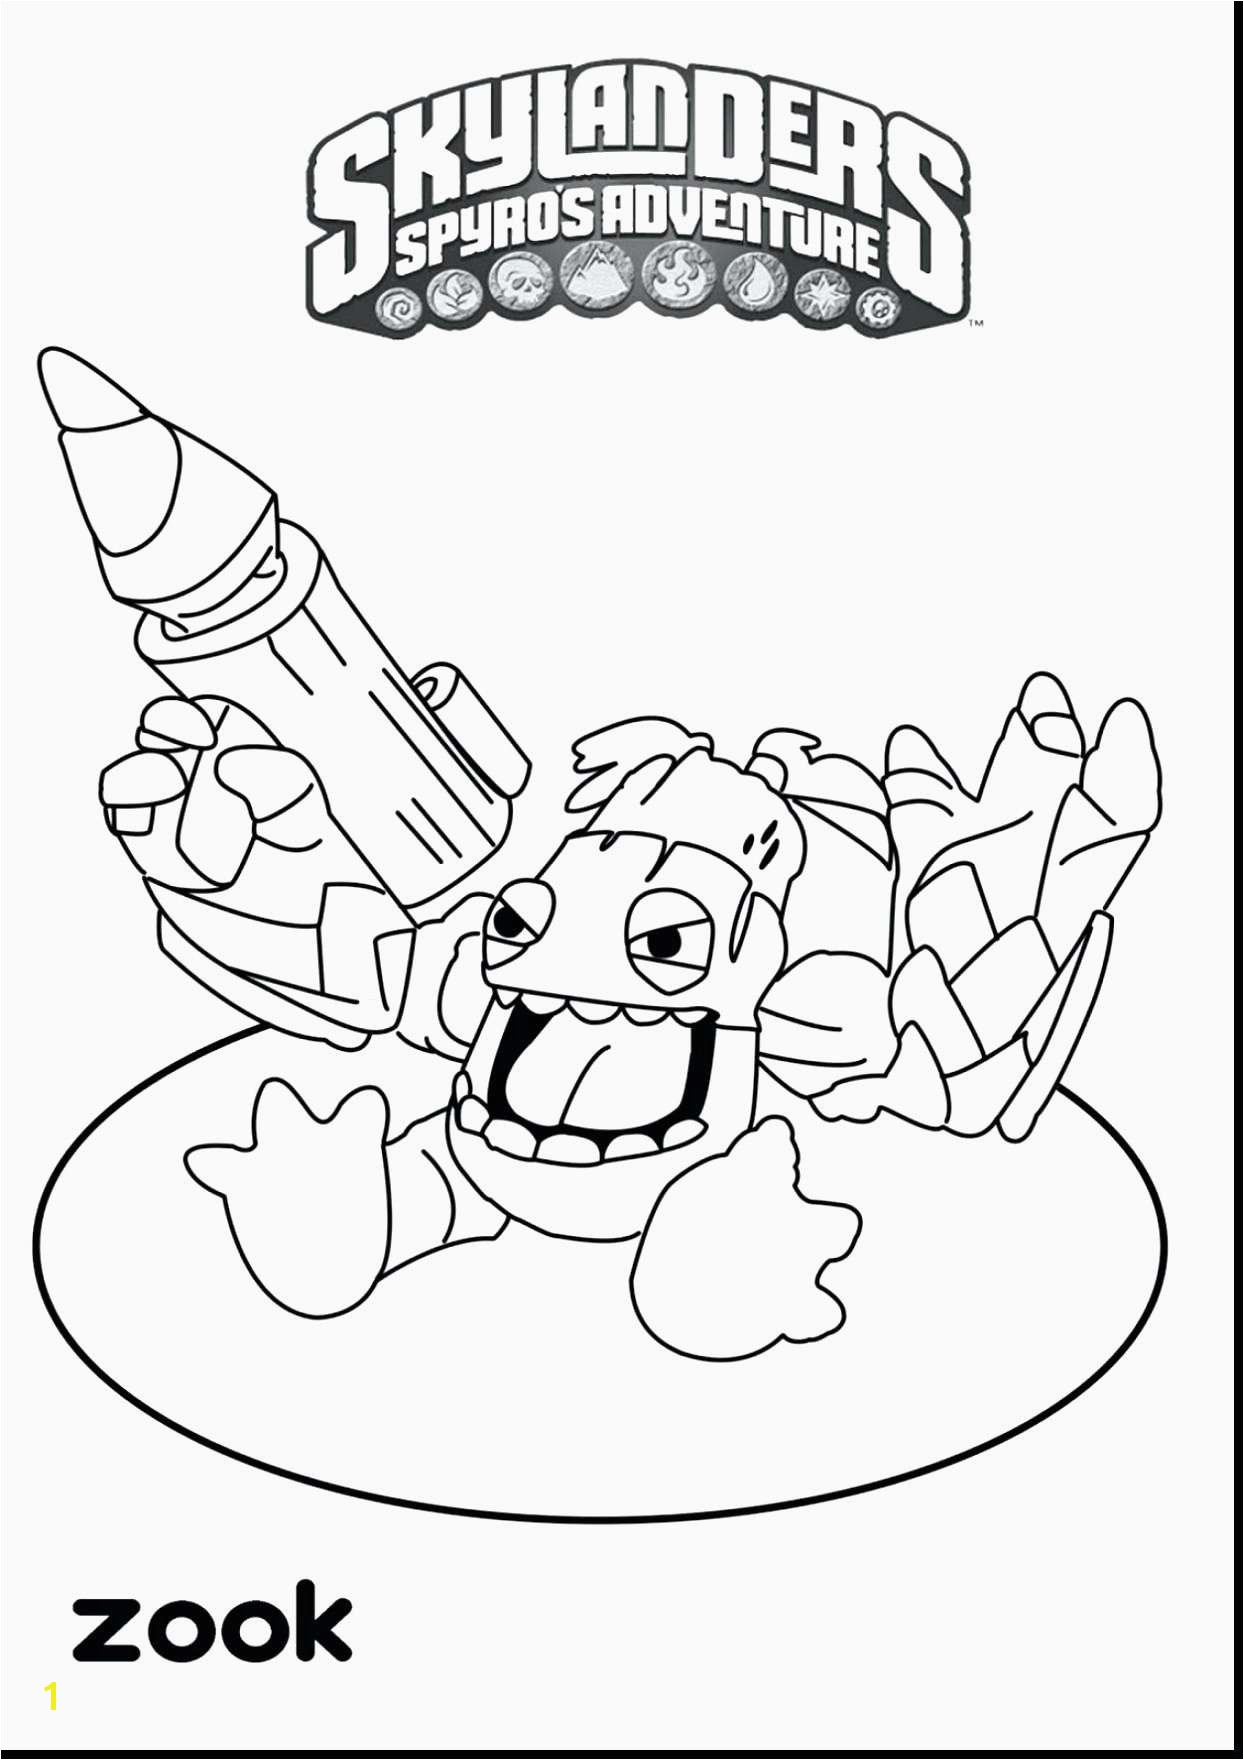 Coloring Pages For Kids Printable Coloring Pages For Kids Printable Beautiful Coloring Printables 0d